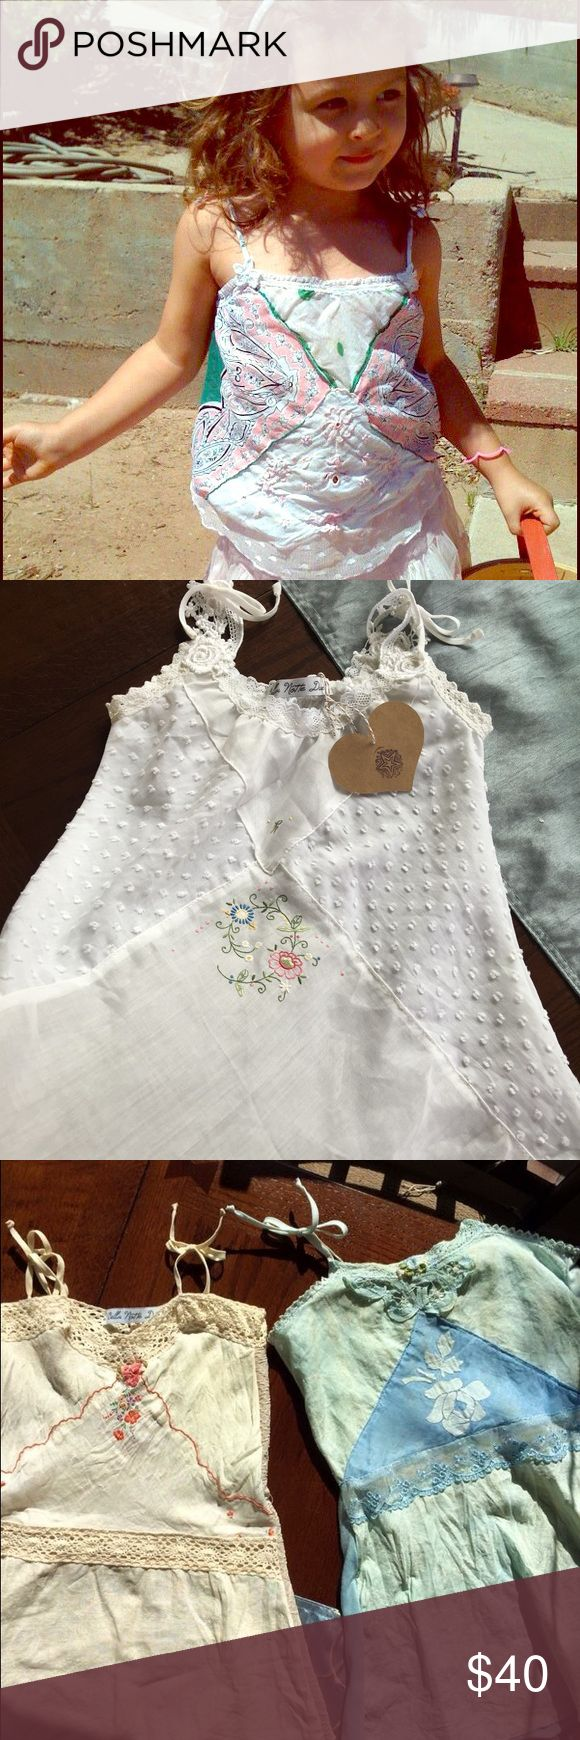 Girls Tank Tops Vintage inspired Bo ho chic for little girls! A unique tank blouse that pairs with tulle skirts or jeans. Bella Notte Due Shirts & Tops Tank Tops